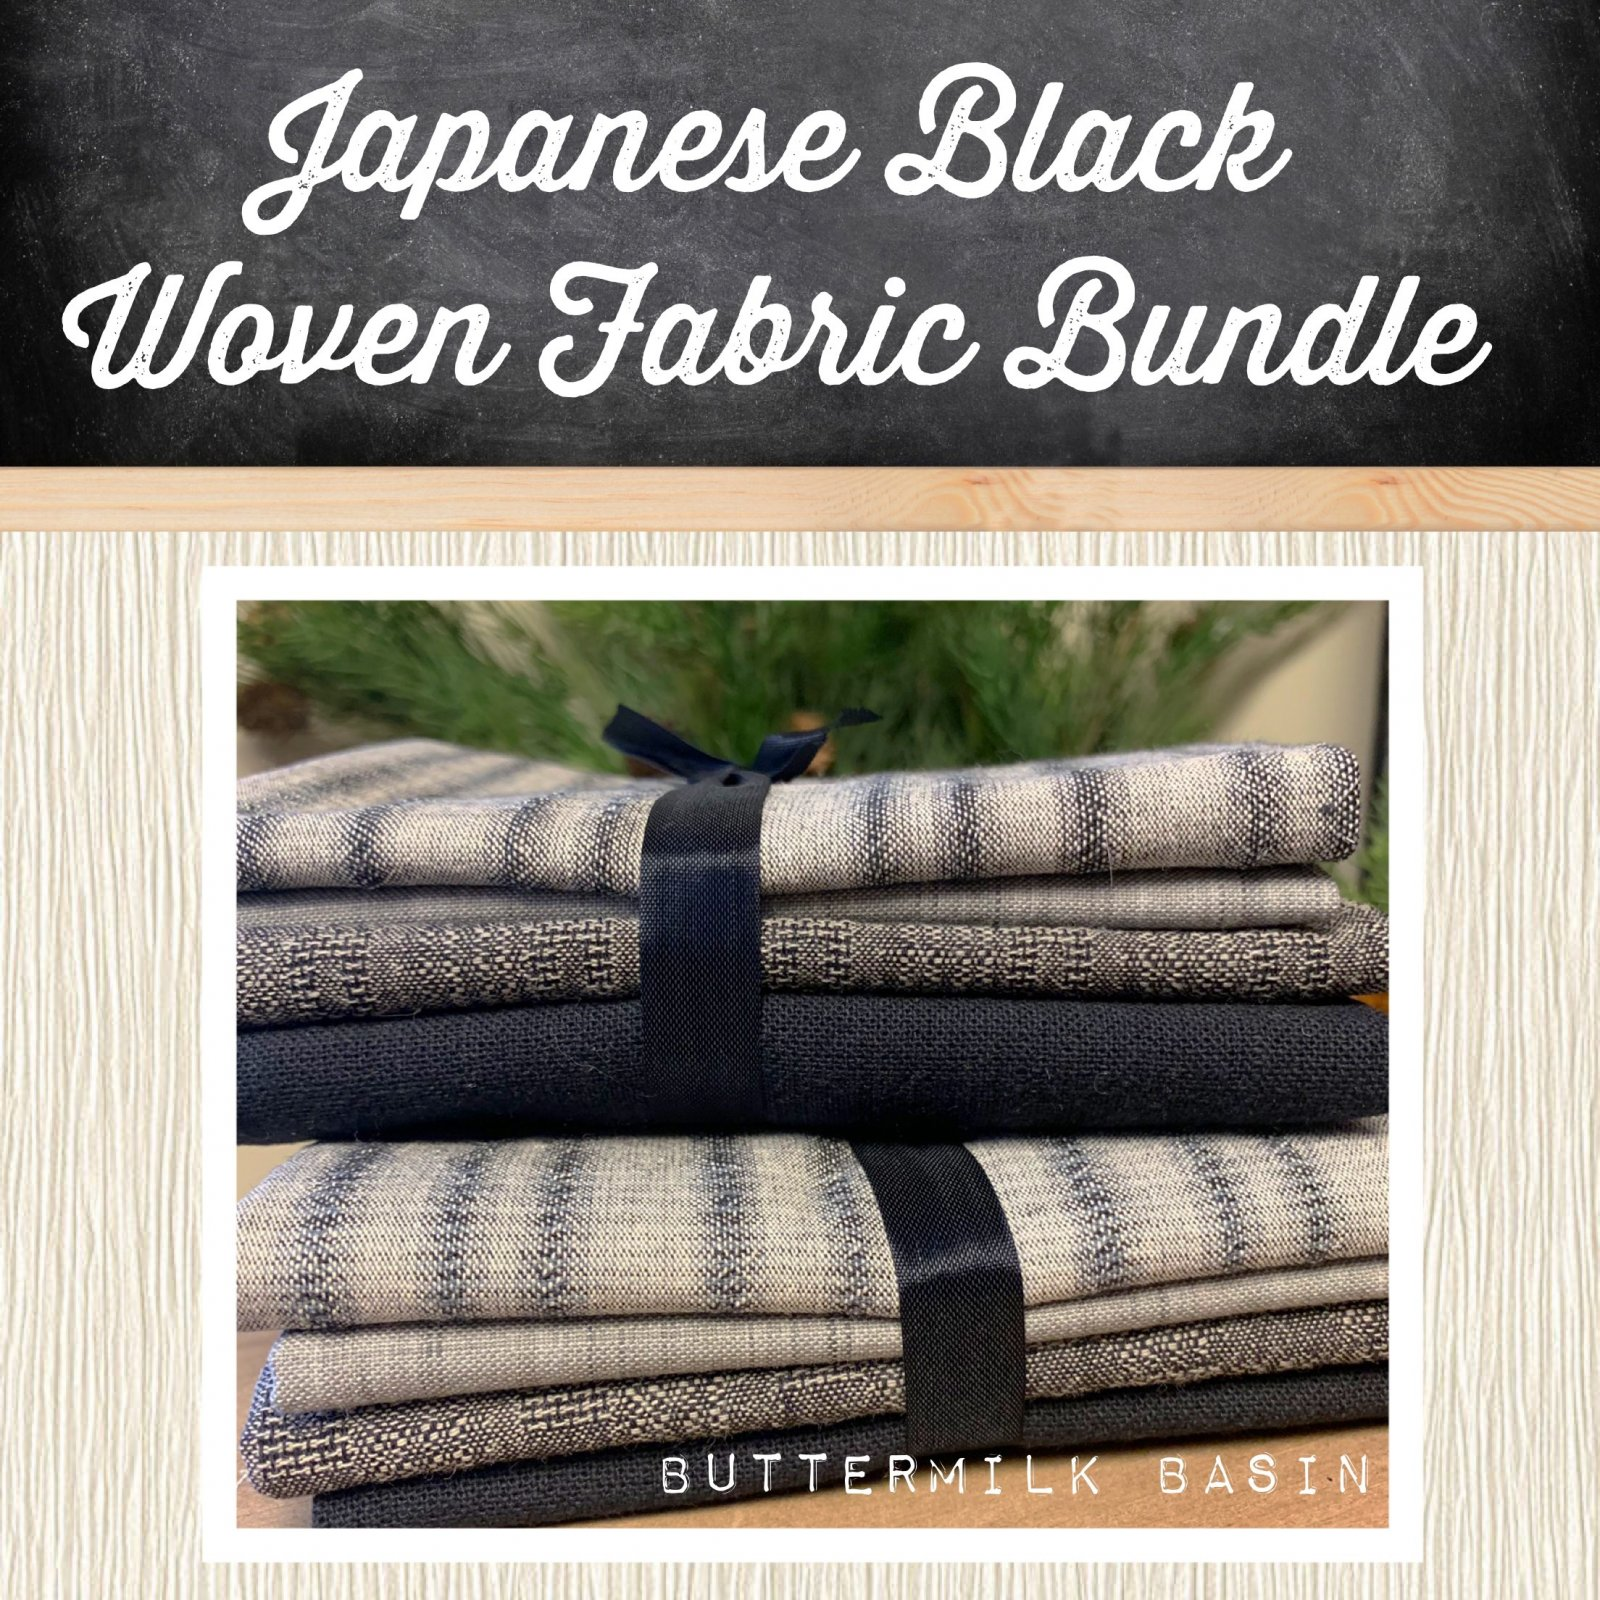 Japanese Black Woven Fabric Bundle